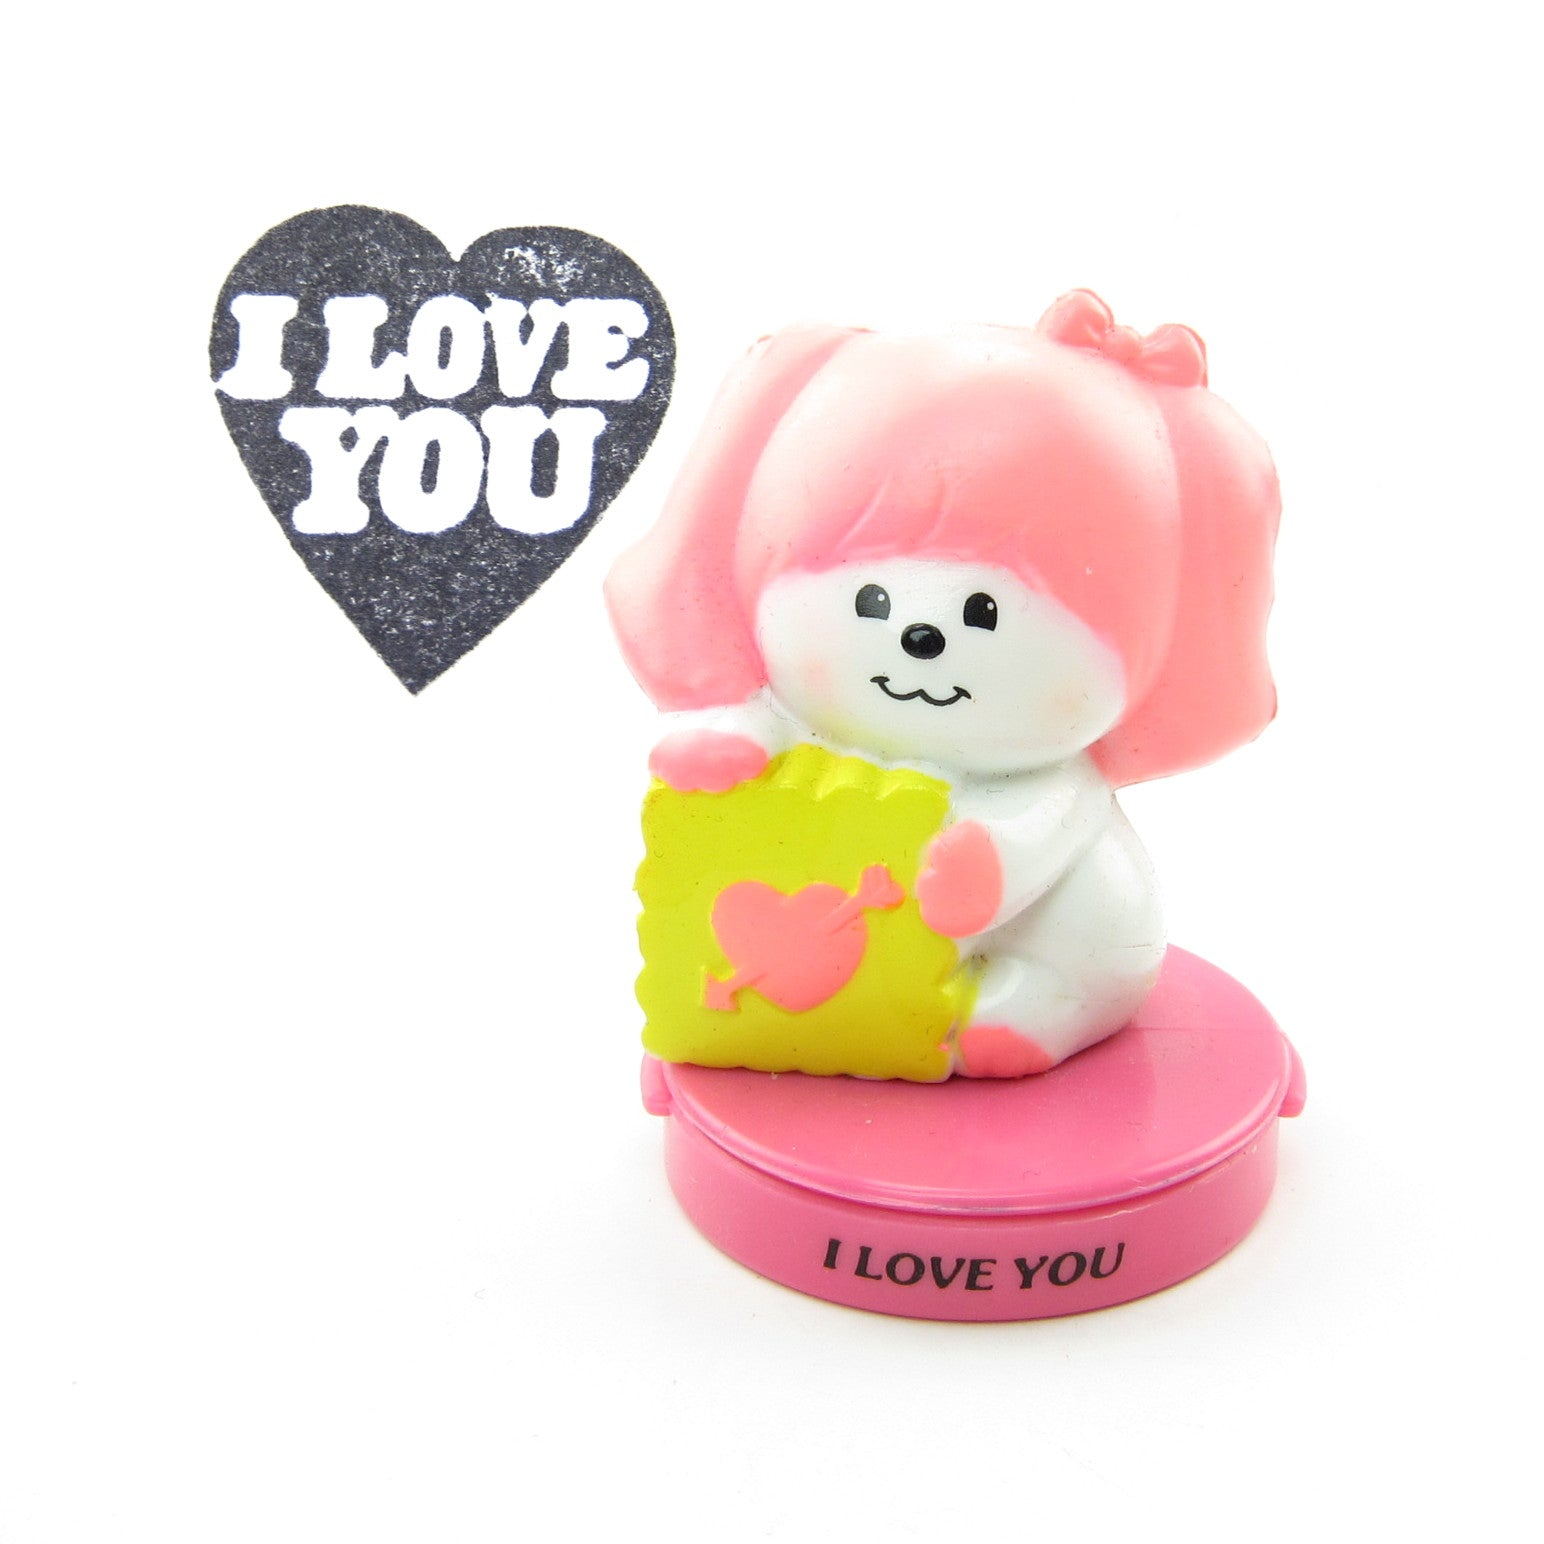 Poochie I Love You rubber ink stamp